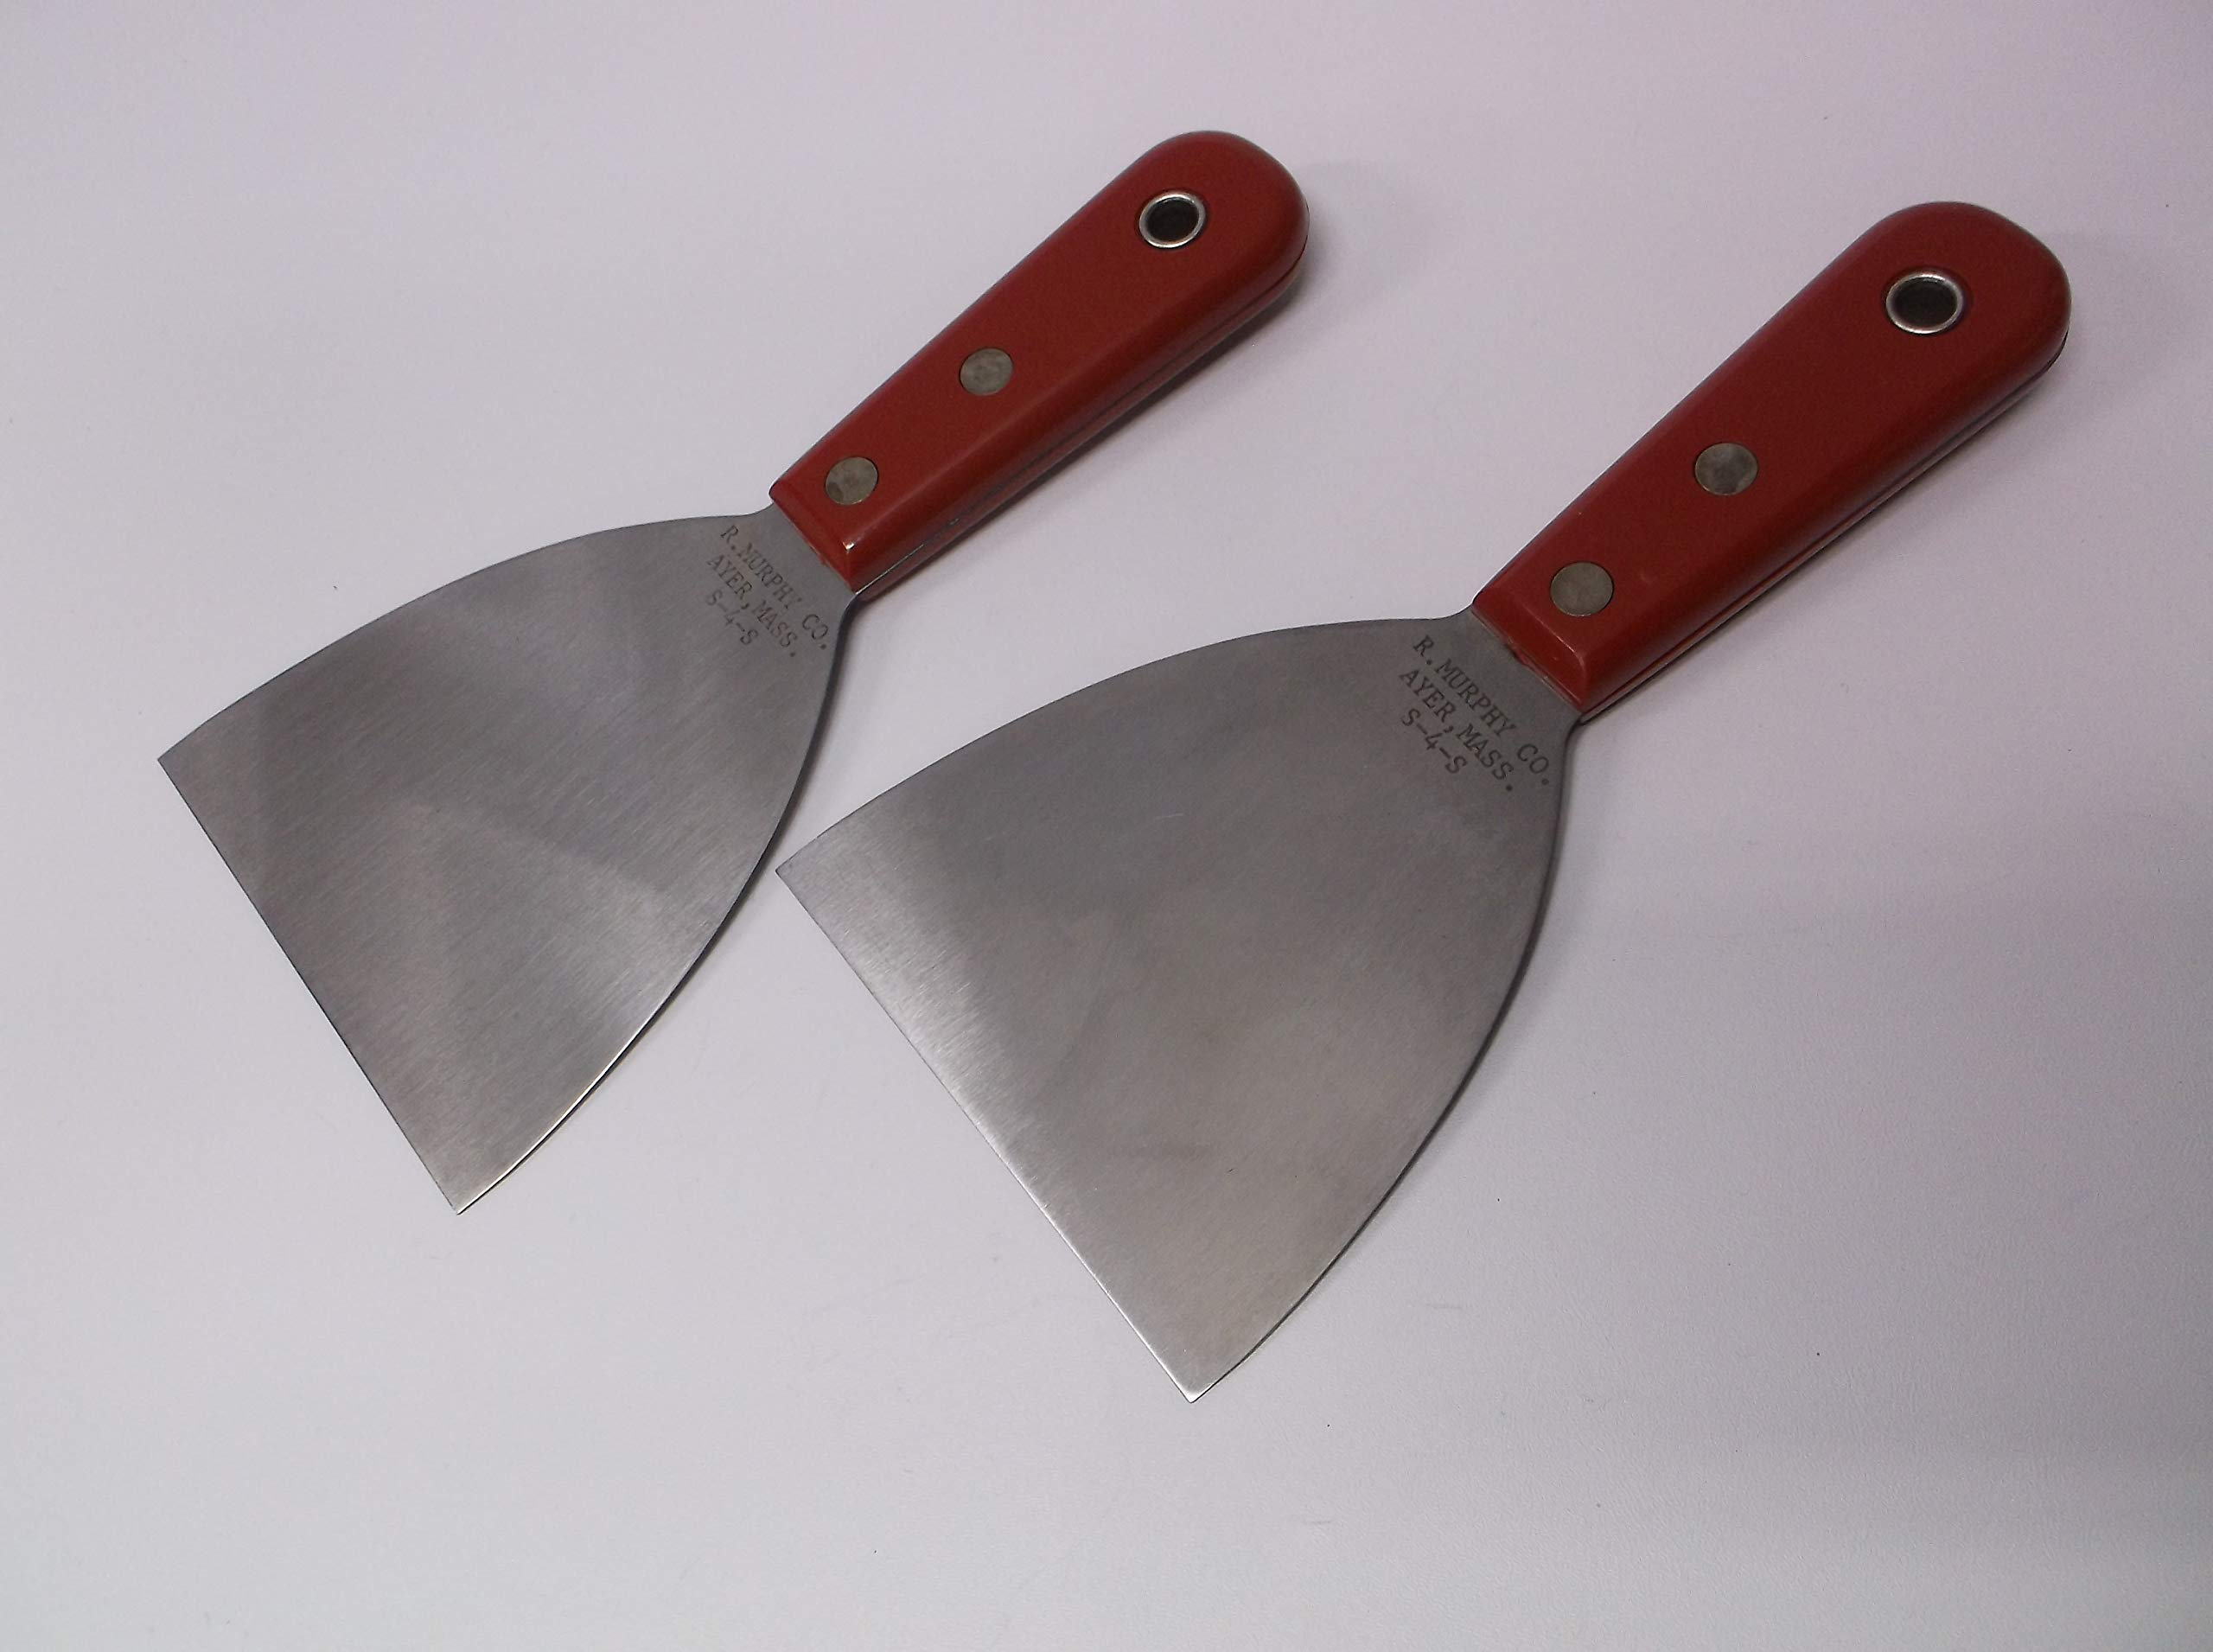 R Murphy USA Set of (2) Scrapers Tools S-4-S Shamrock Brand 4 inch Blade New - Non Beveled Edge Stiff Stainless Blades High Impact Red Handles